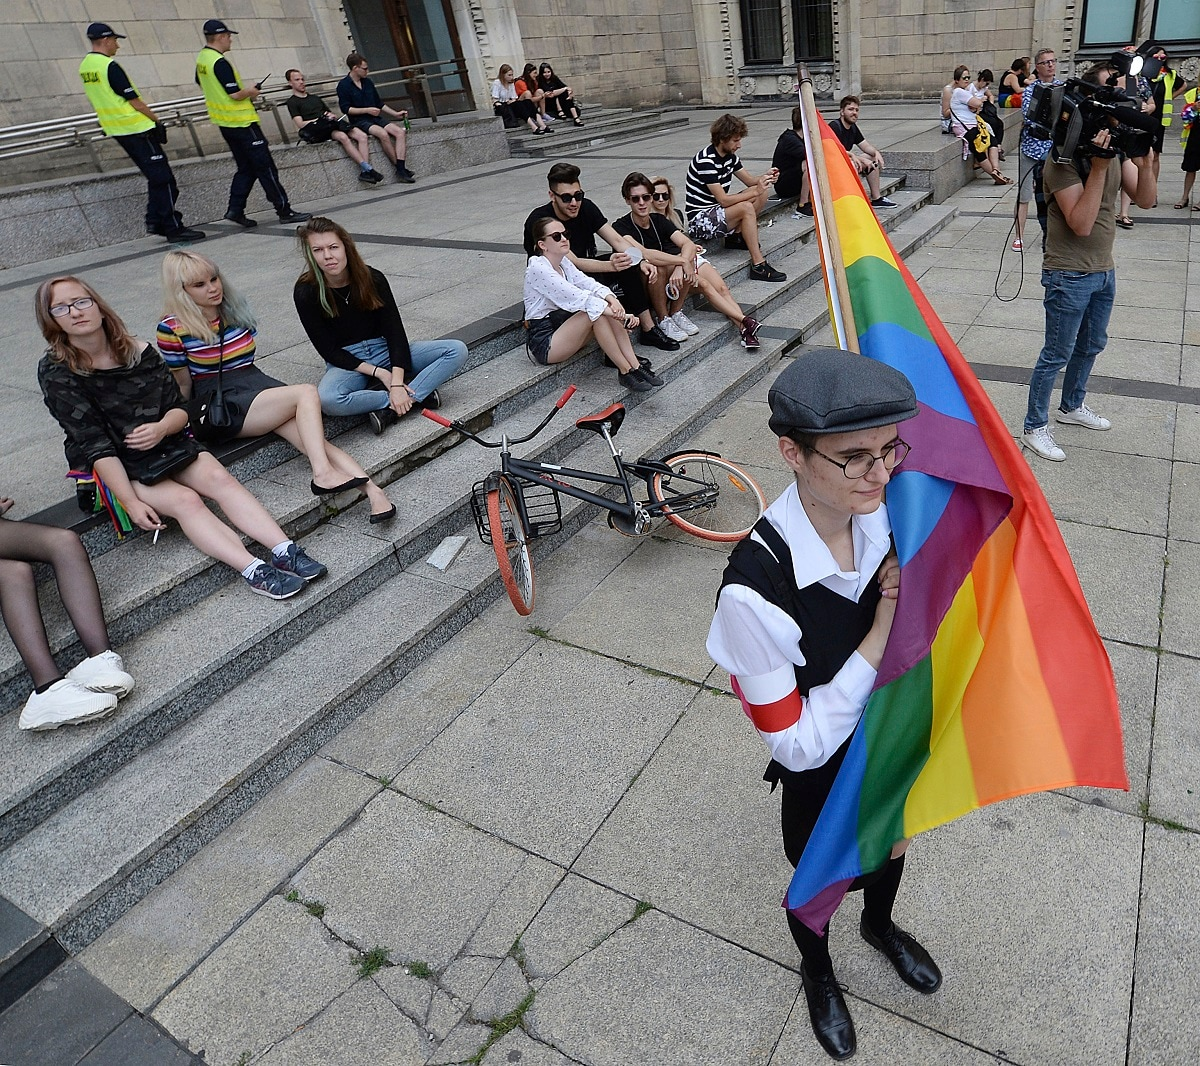 Poland's opposition left-wing parties have staged a rally against violence in the eastern city of Bialystok where an LGBT rights march was attacked last week by far-right groups. (AP Photo/Czarek Sokolowski)